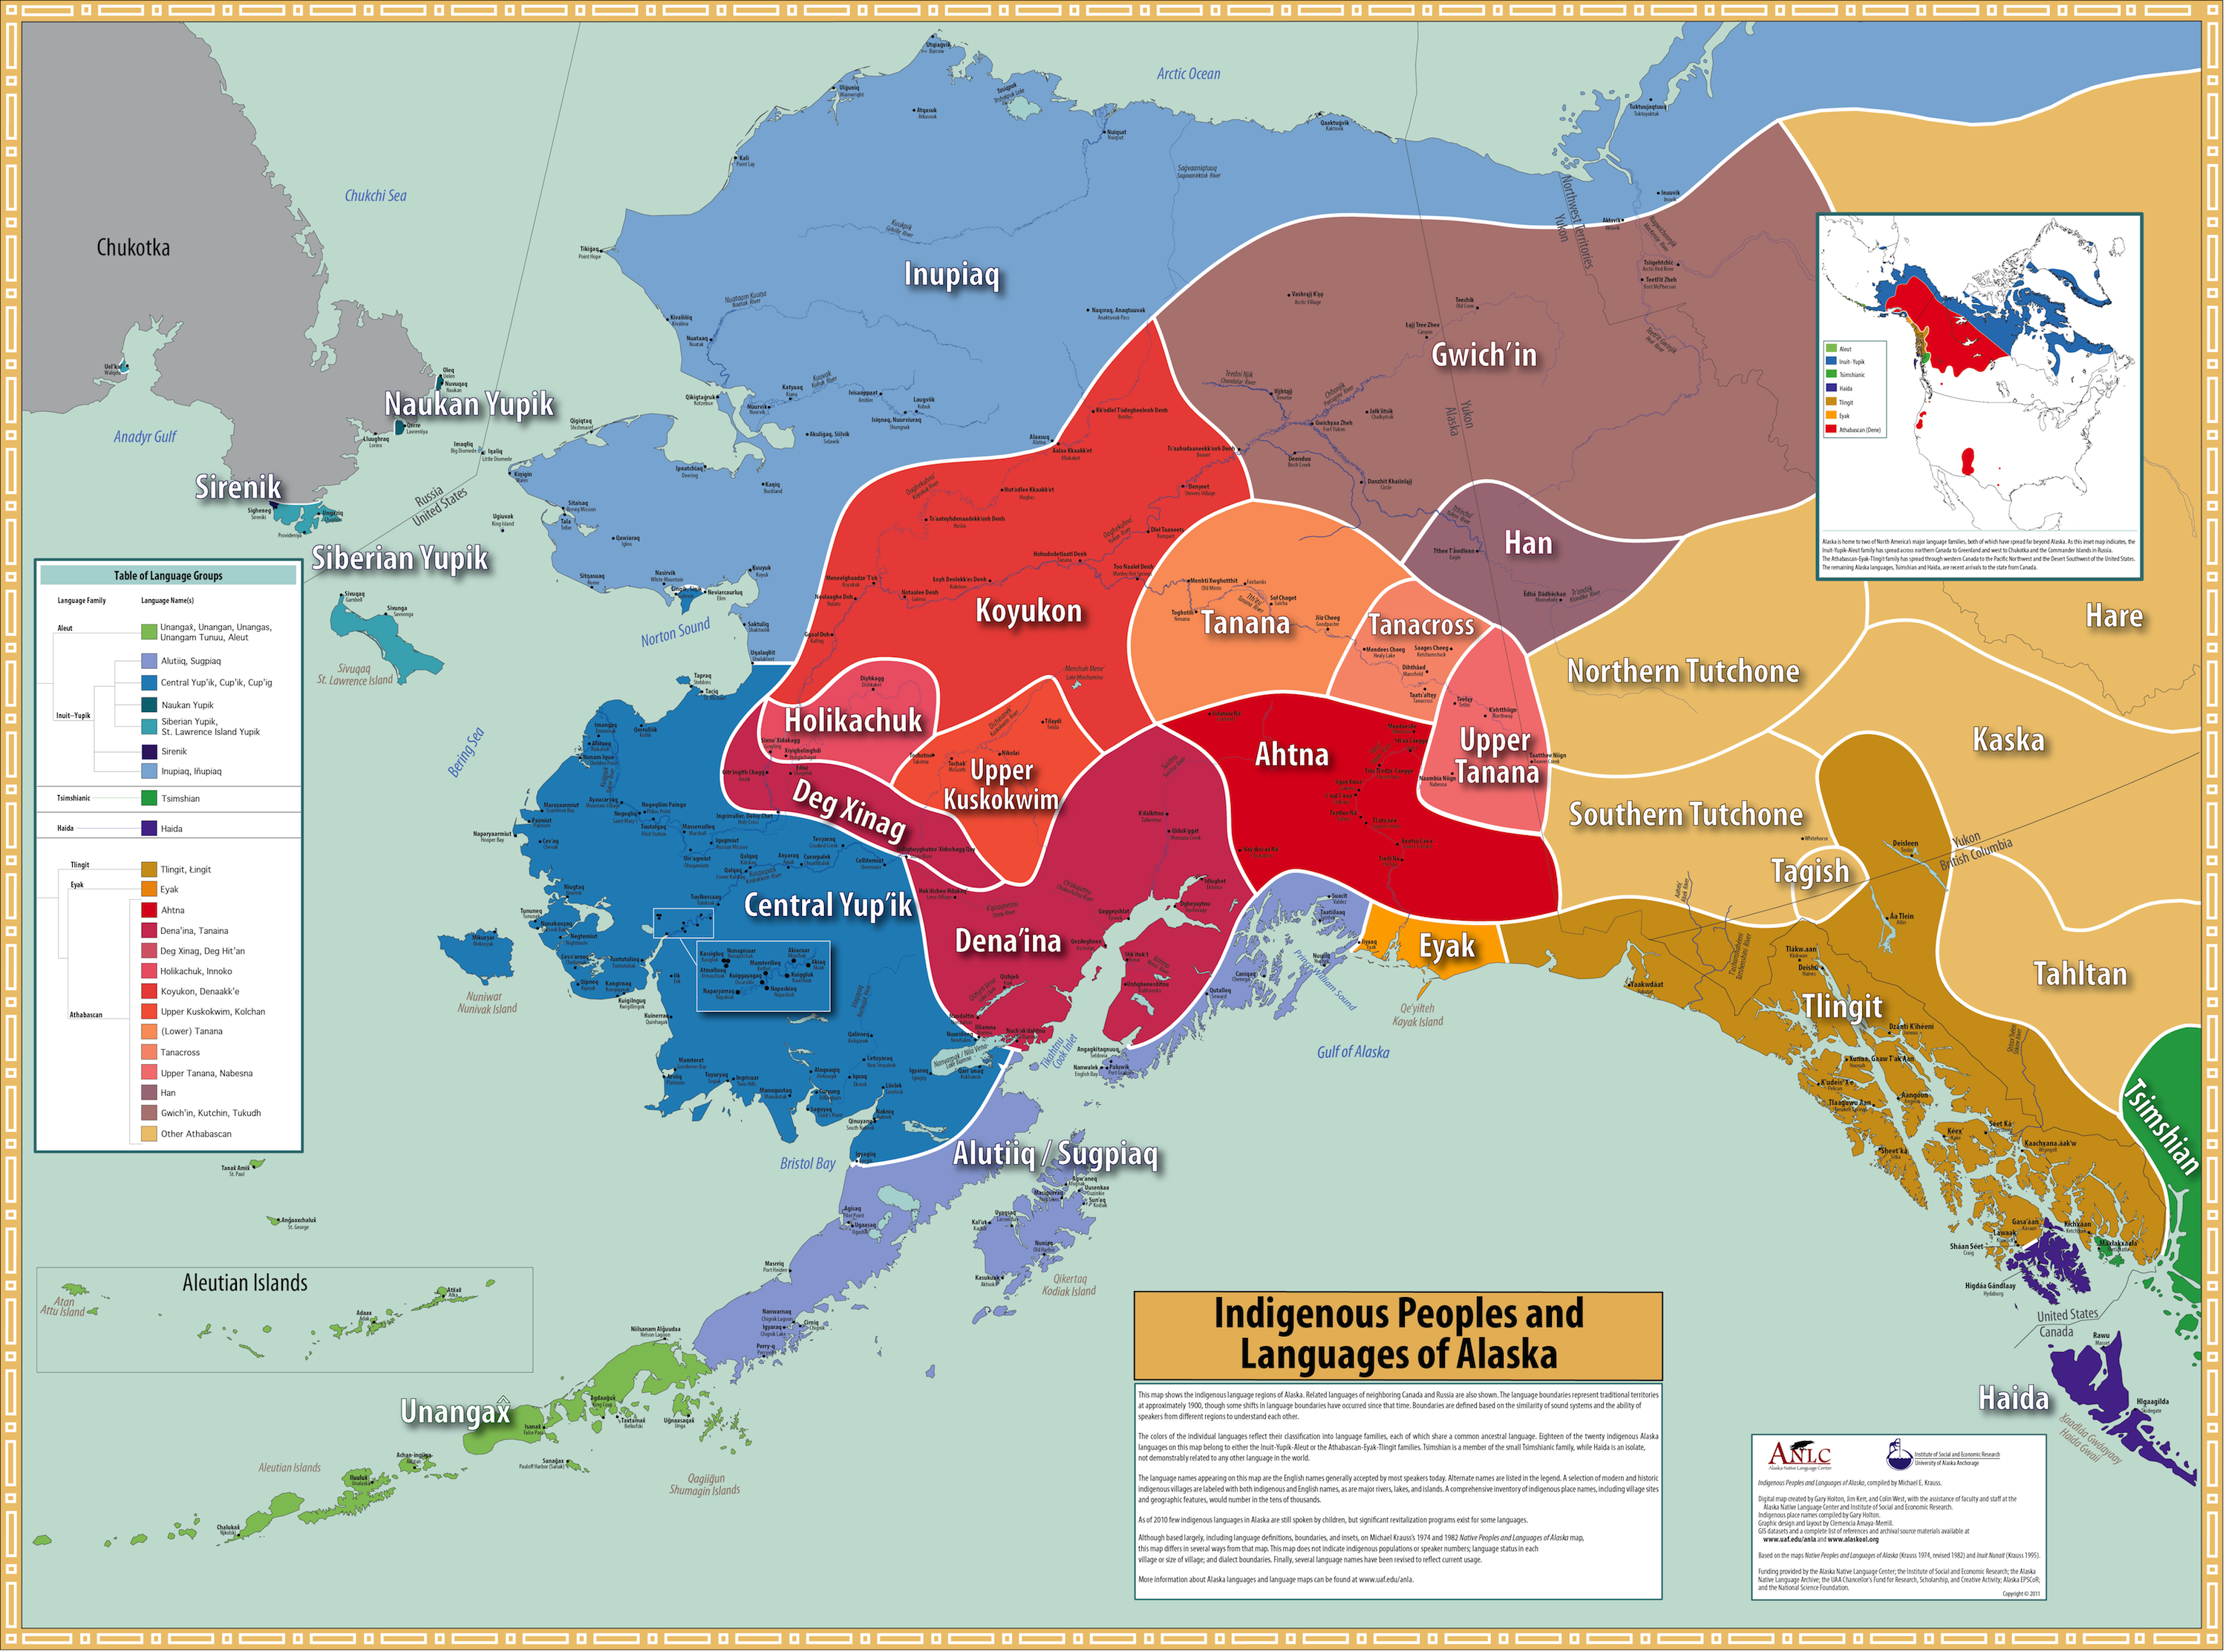 A map of the Indigenous Peoples and Languages of Alaska